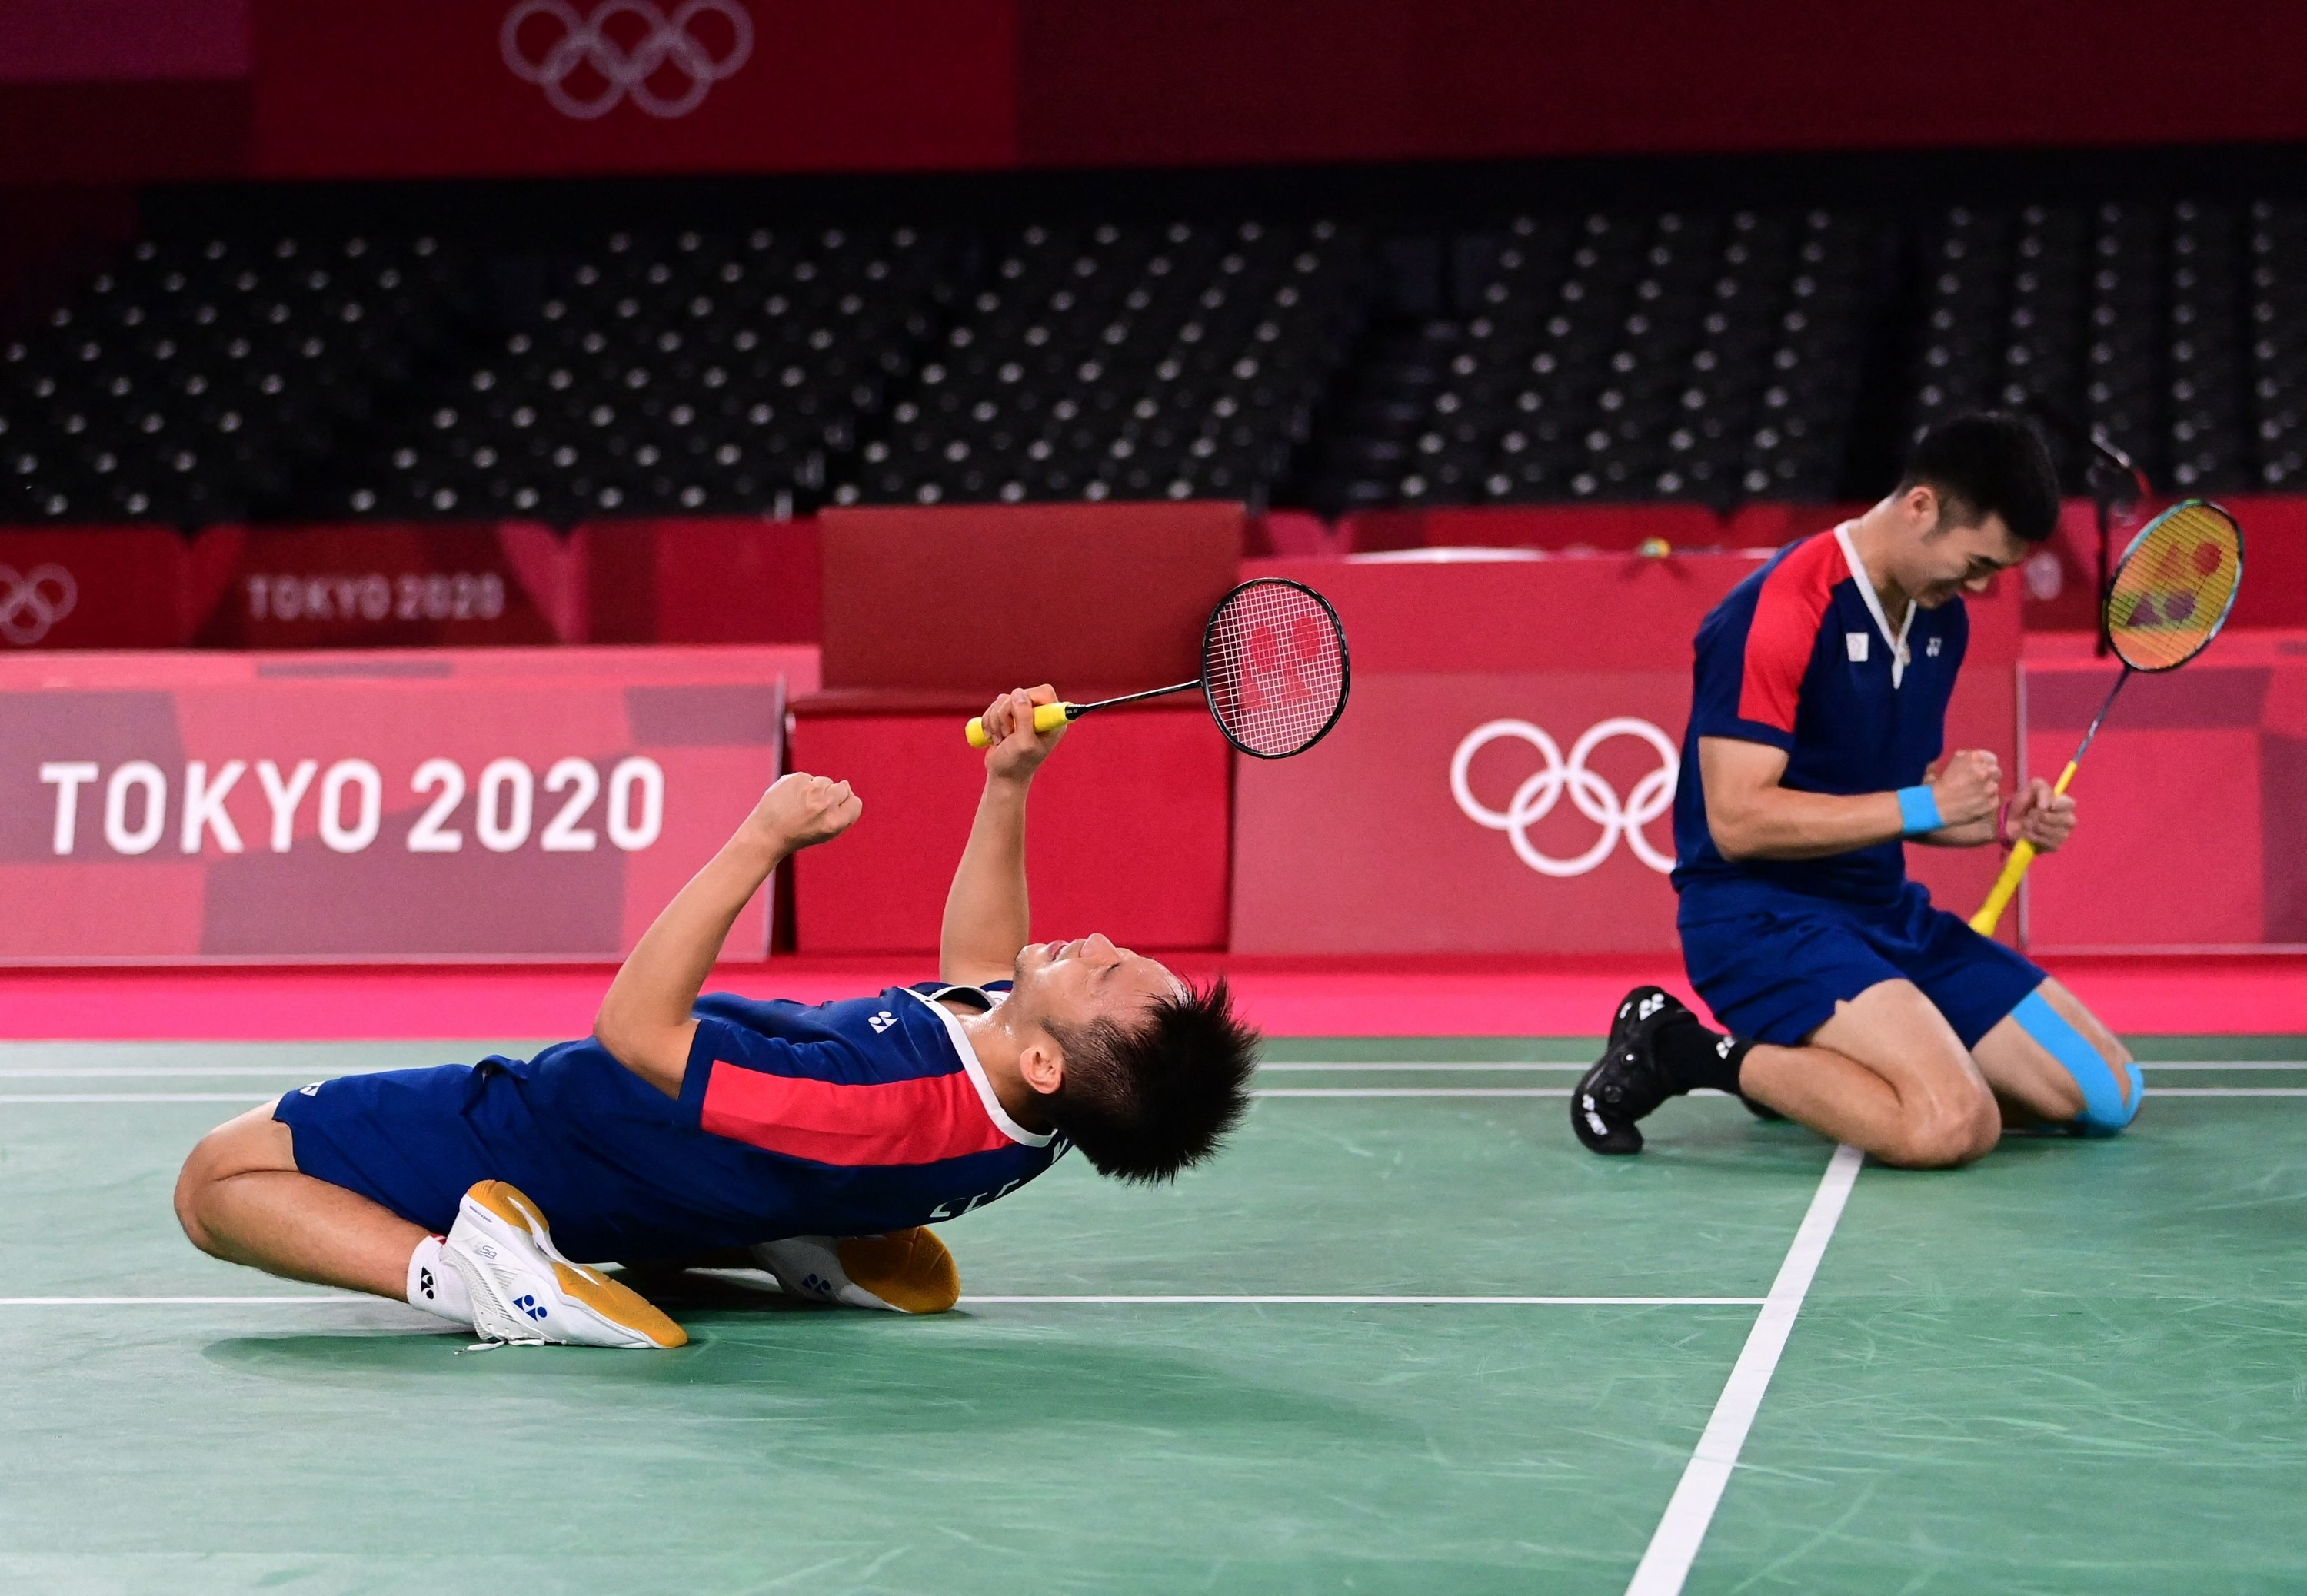 Two badminton players pump their fists and kneel on the badminton court